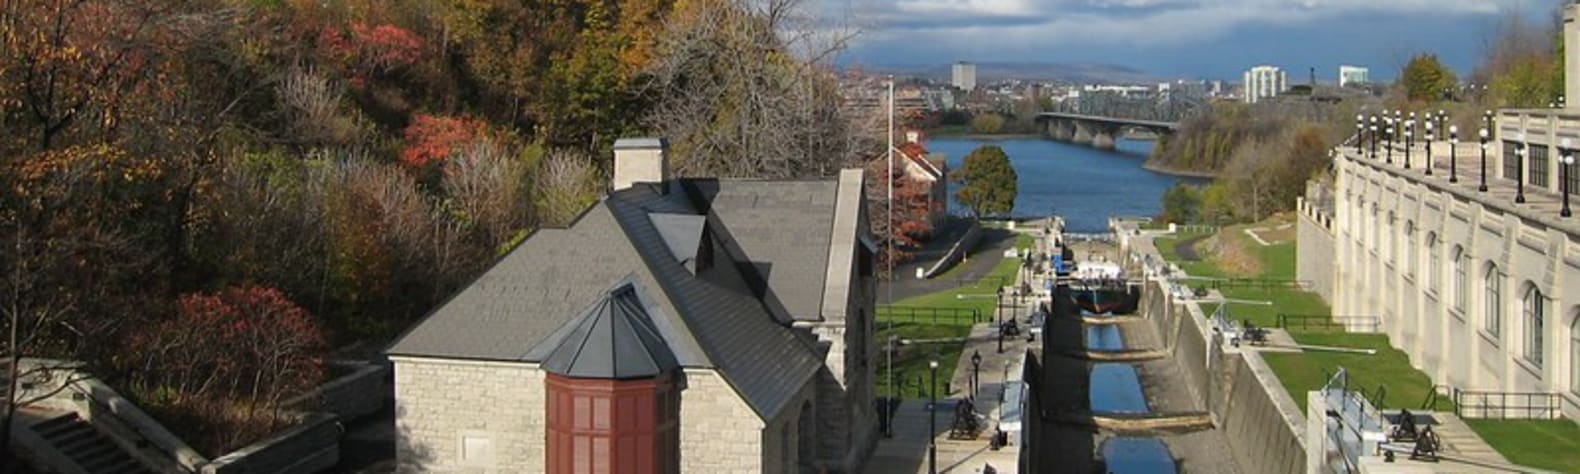 Rideau Canal National Historic Site